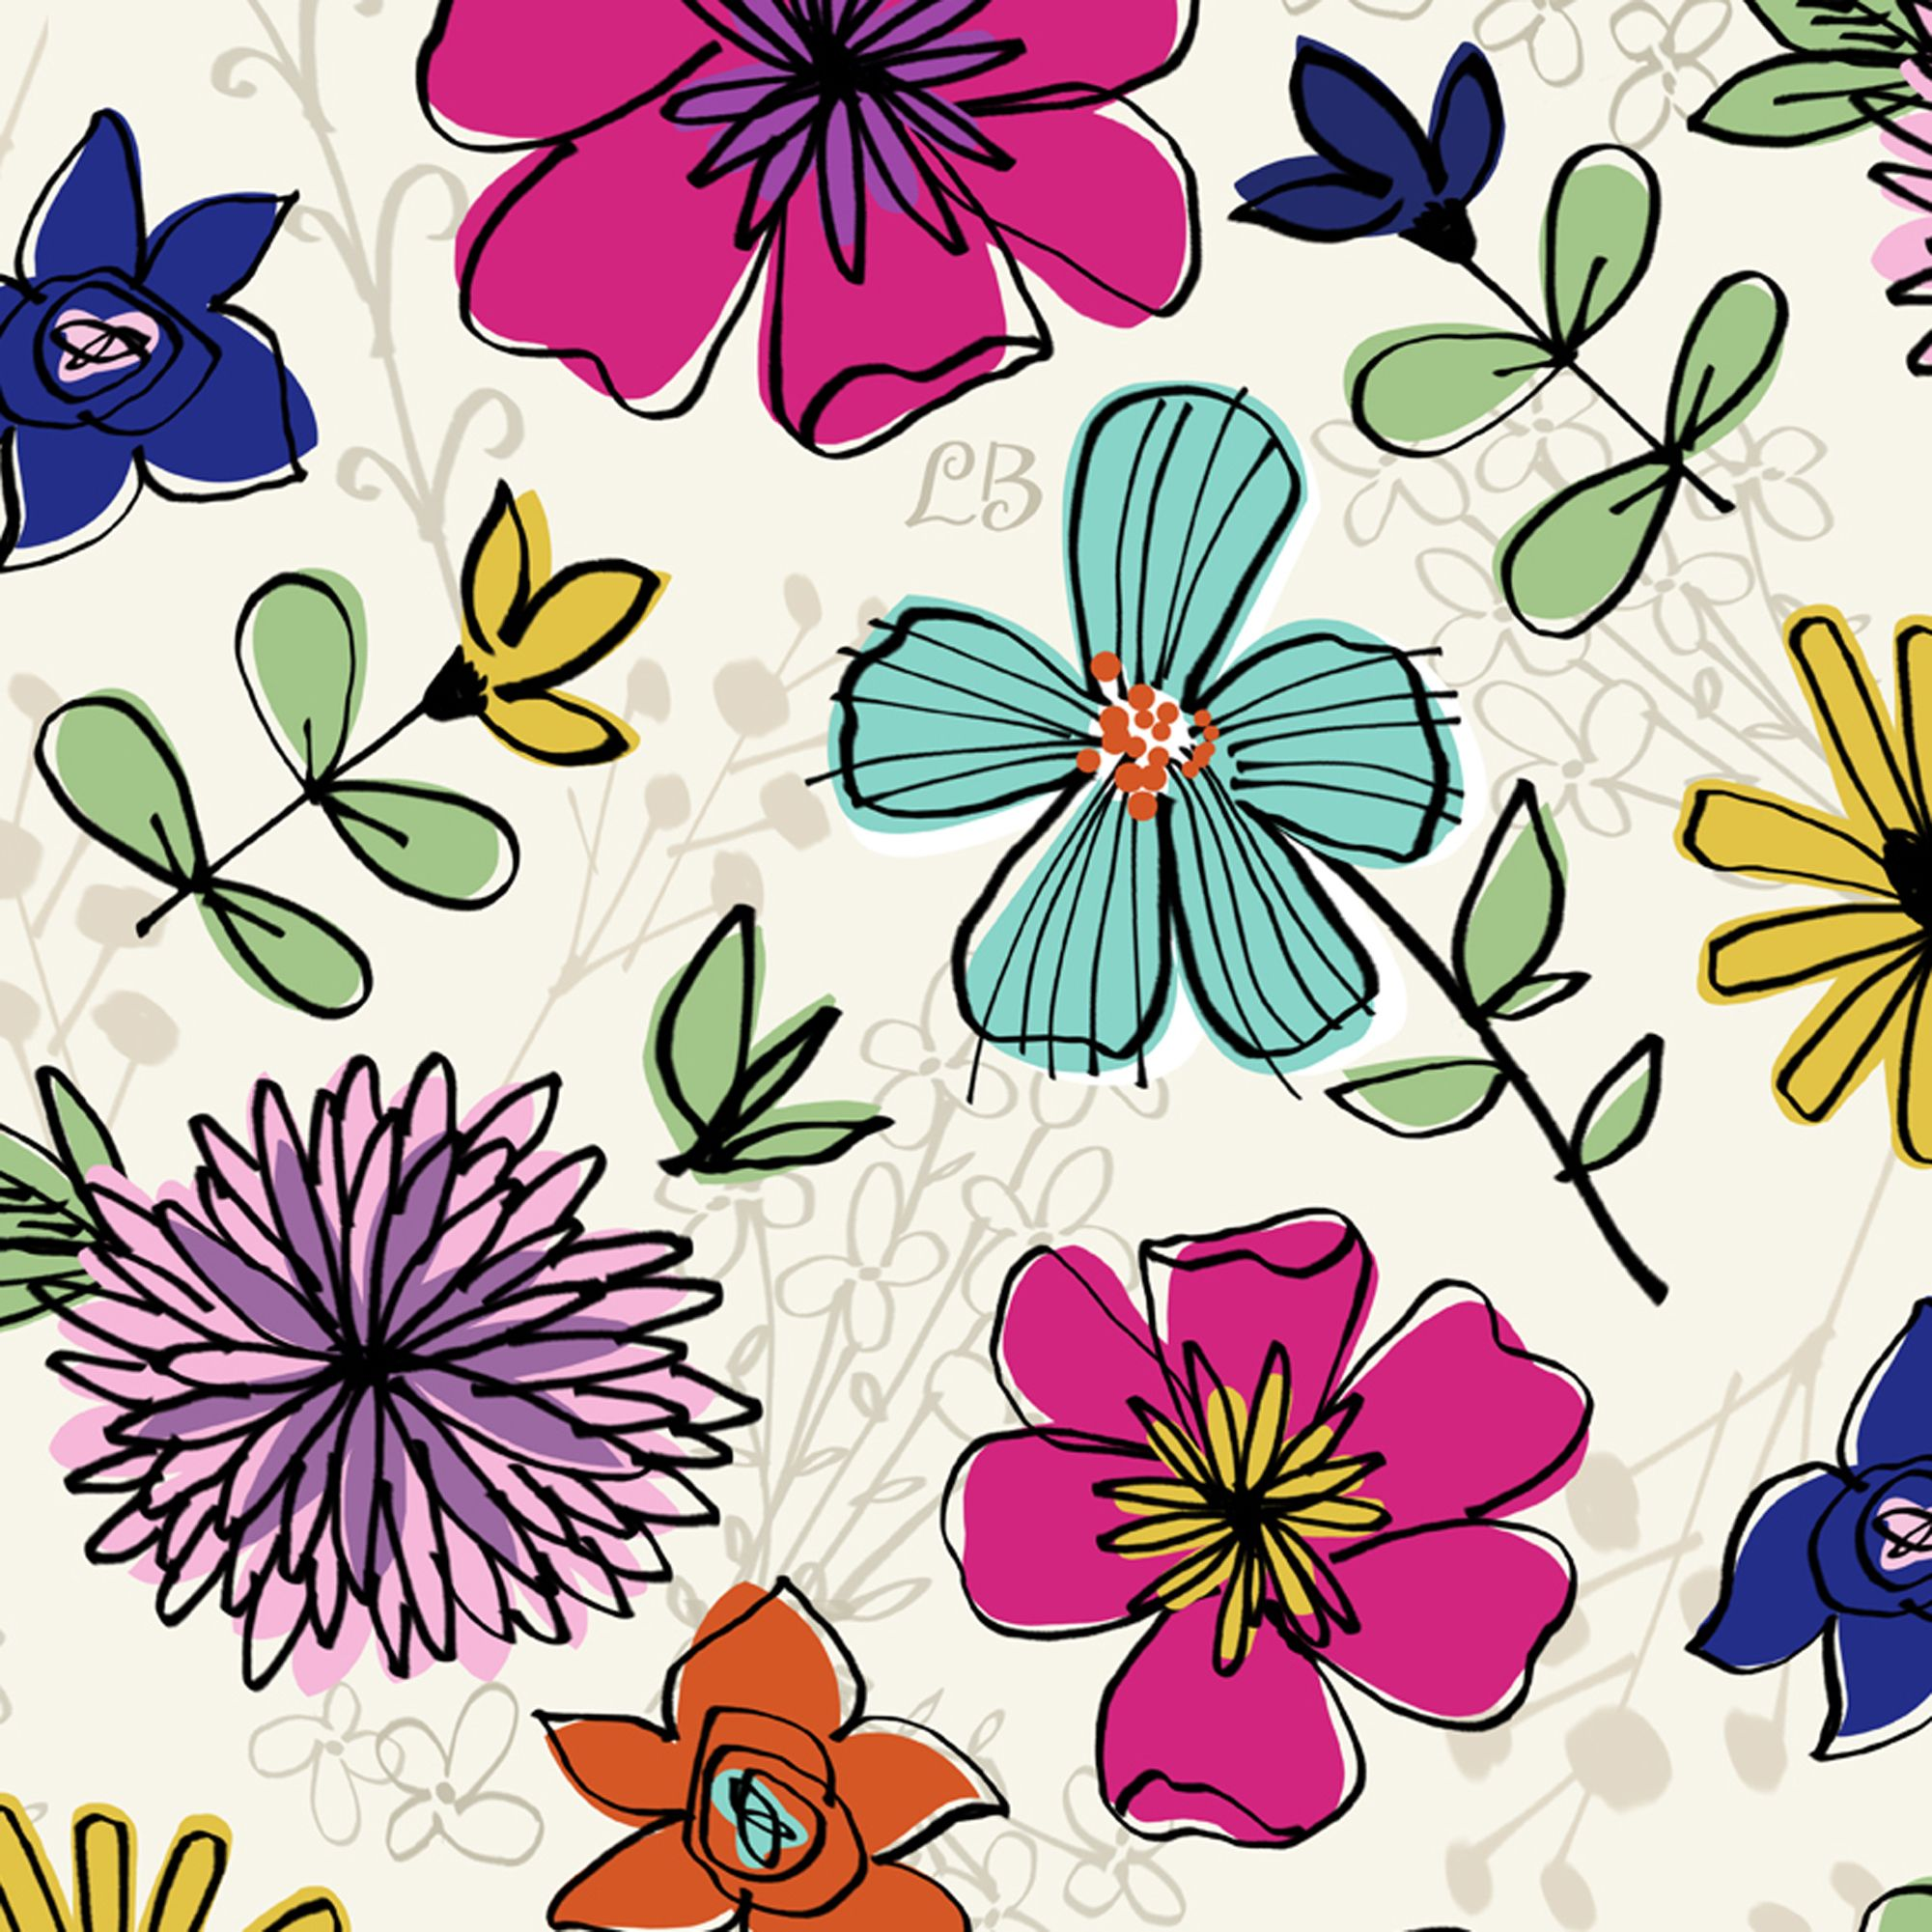 floral print twitter backgrounds wwwimgkidcom the